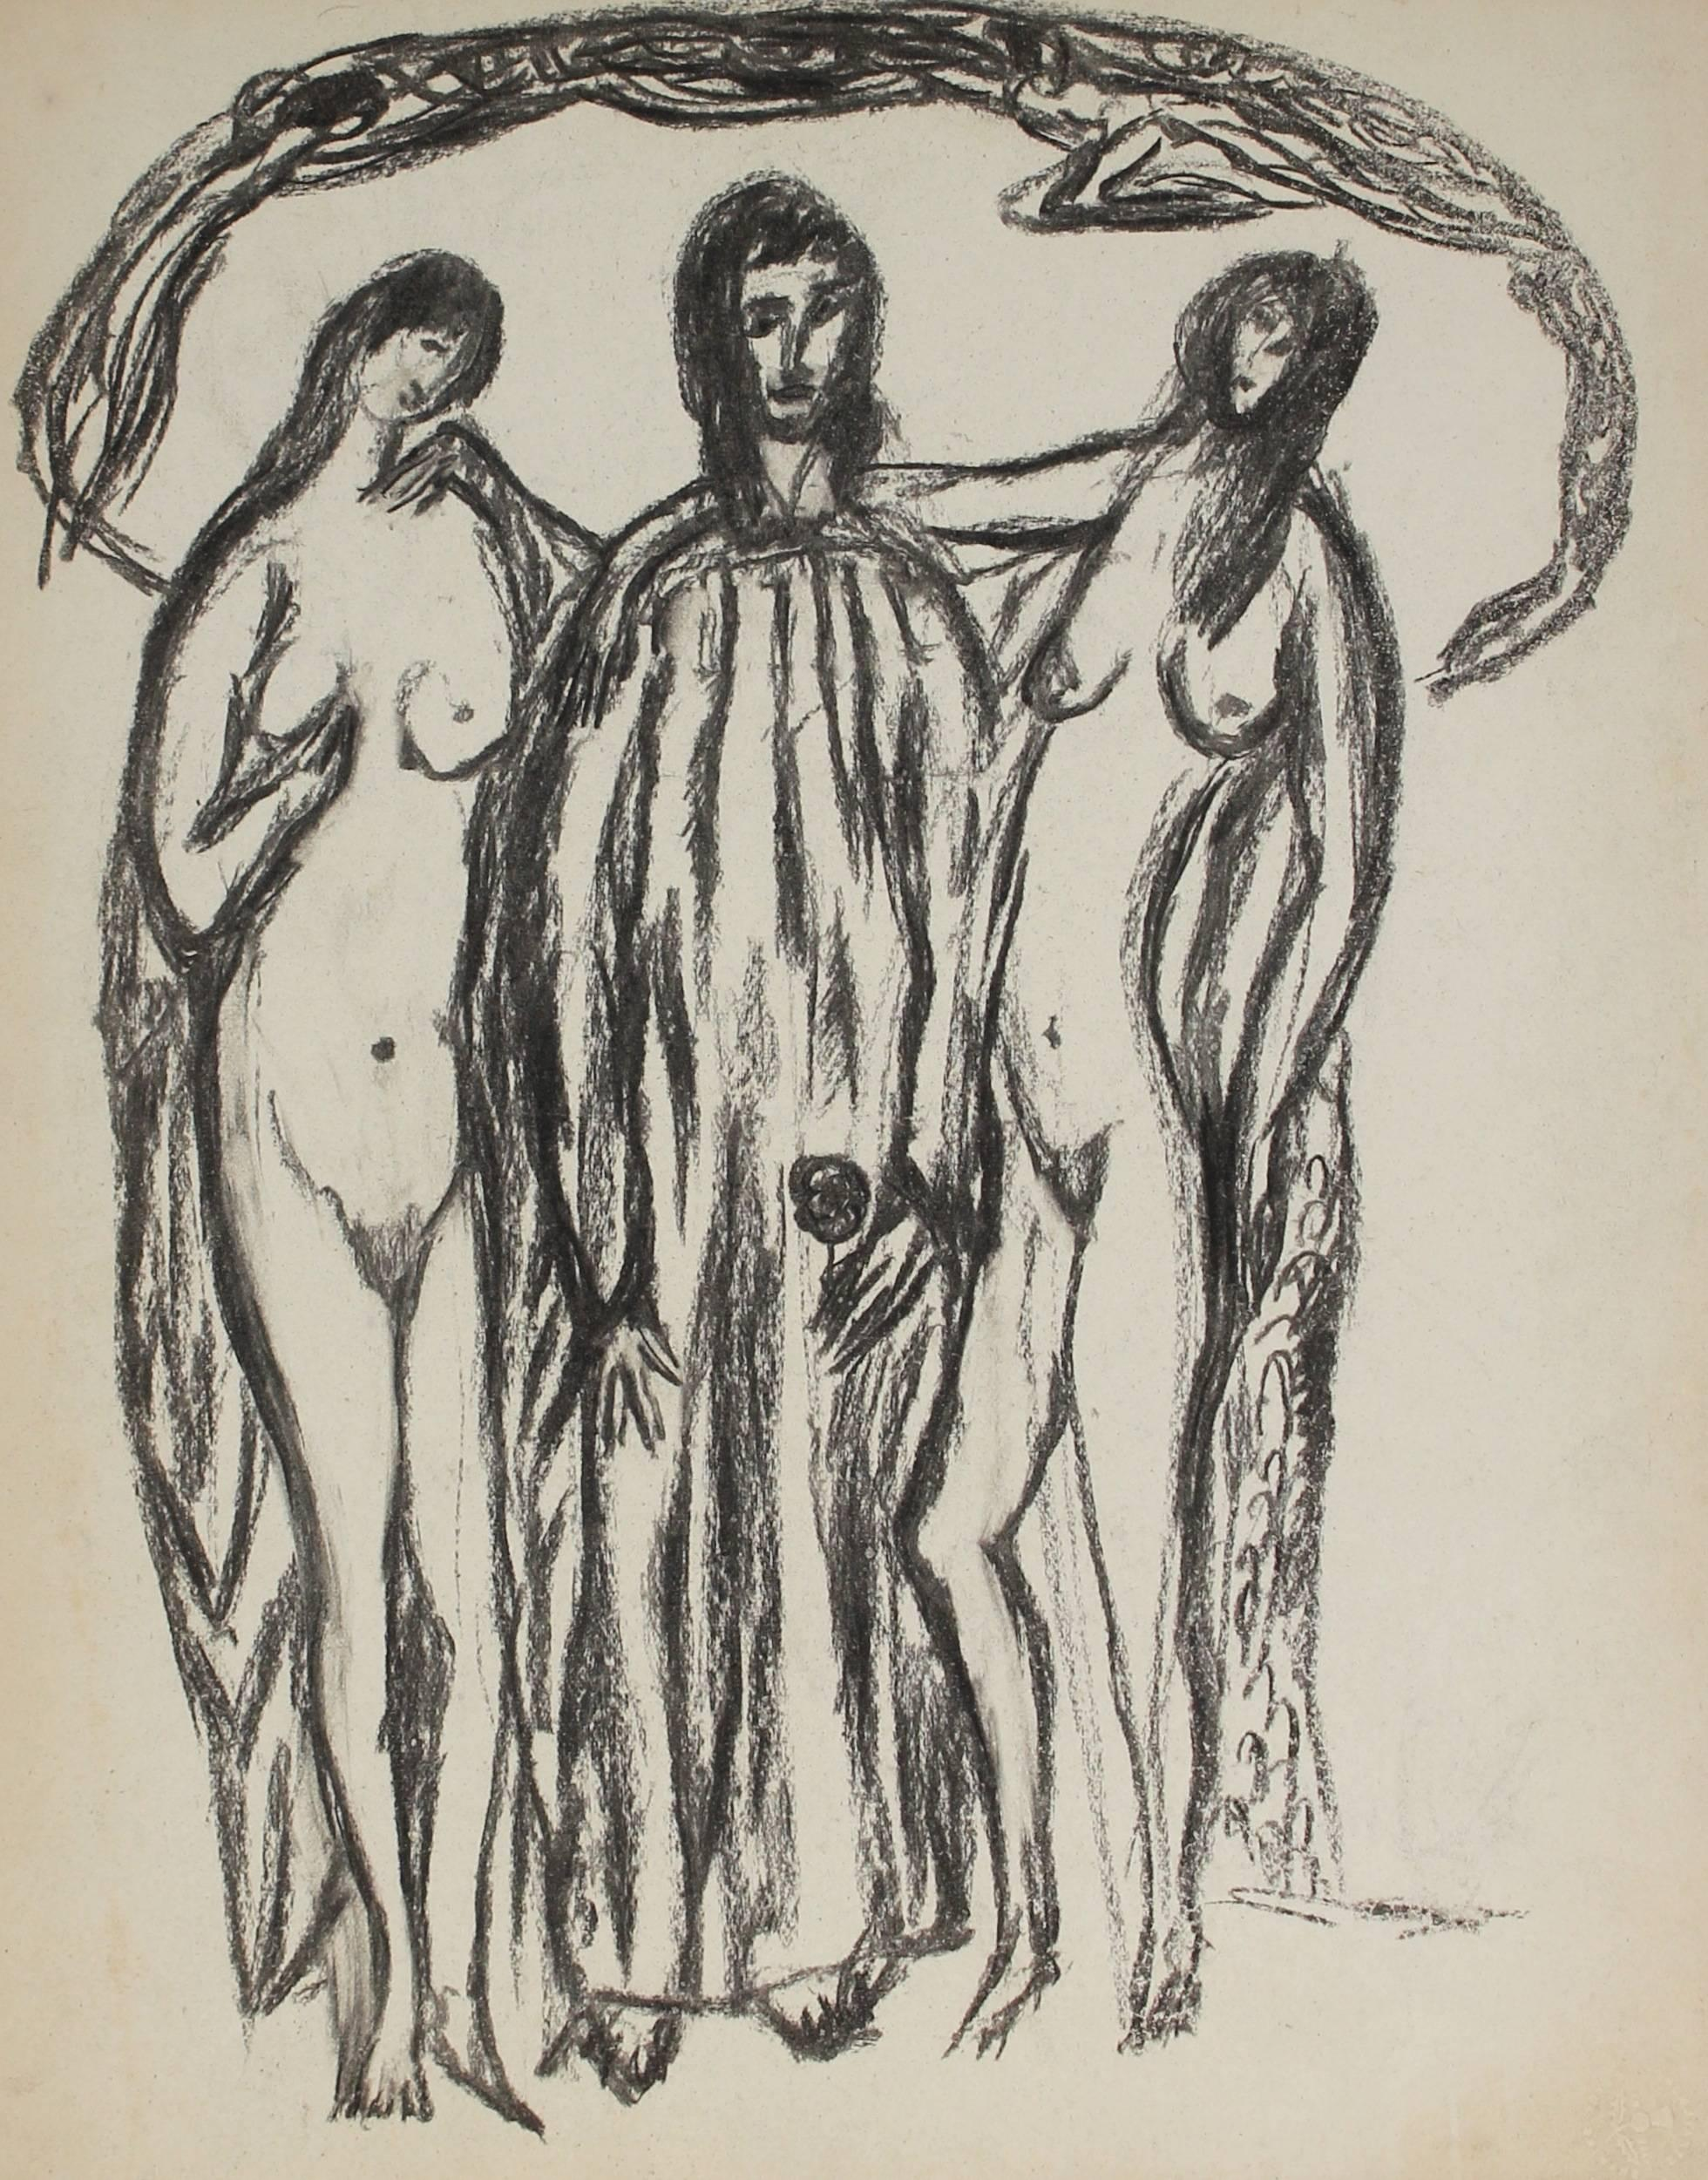 Three Expressionist Figures in Charcoal, Early 20th Century